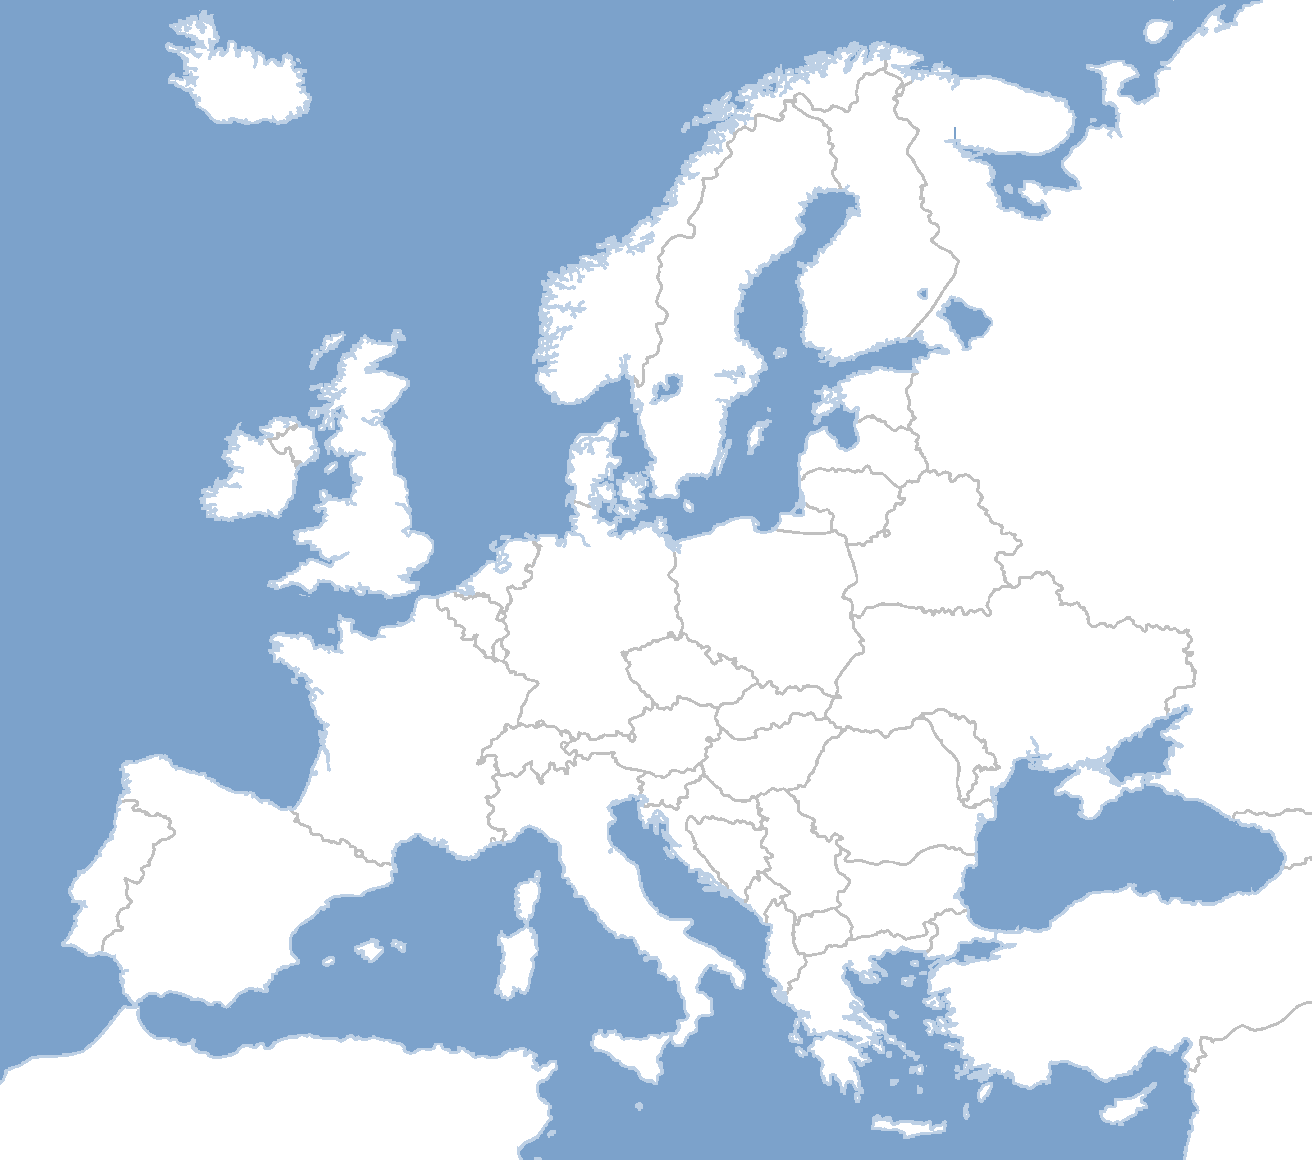 European Russia Free Maps Free Blank Maps Free Outline Maps